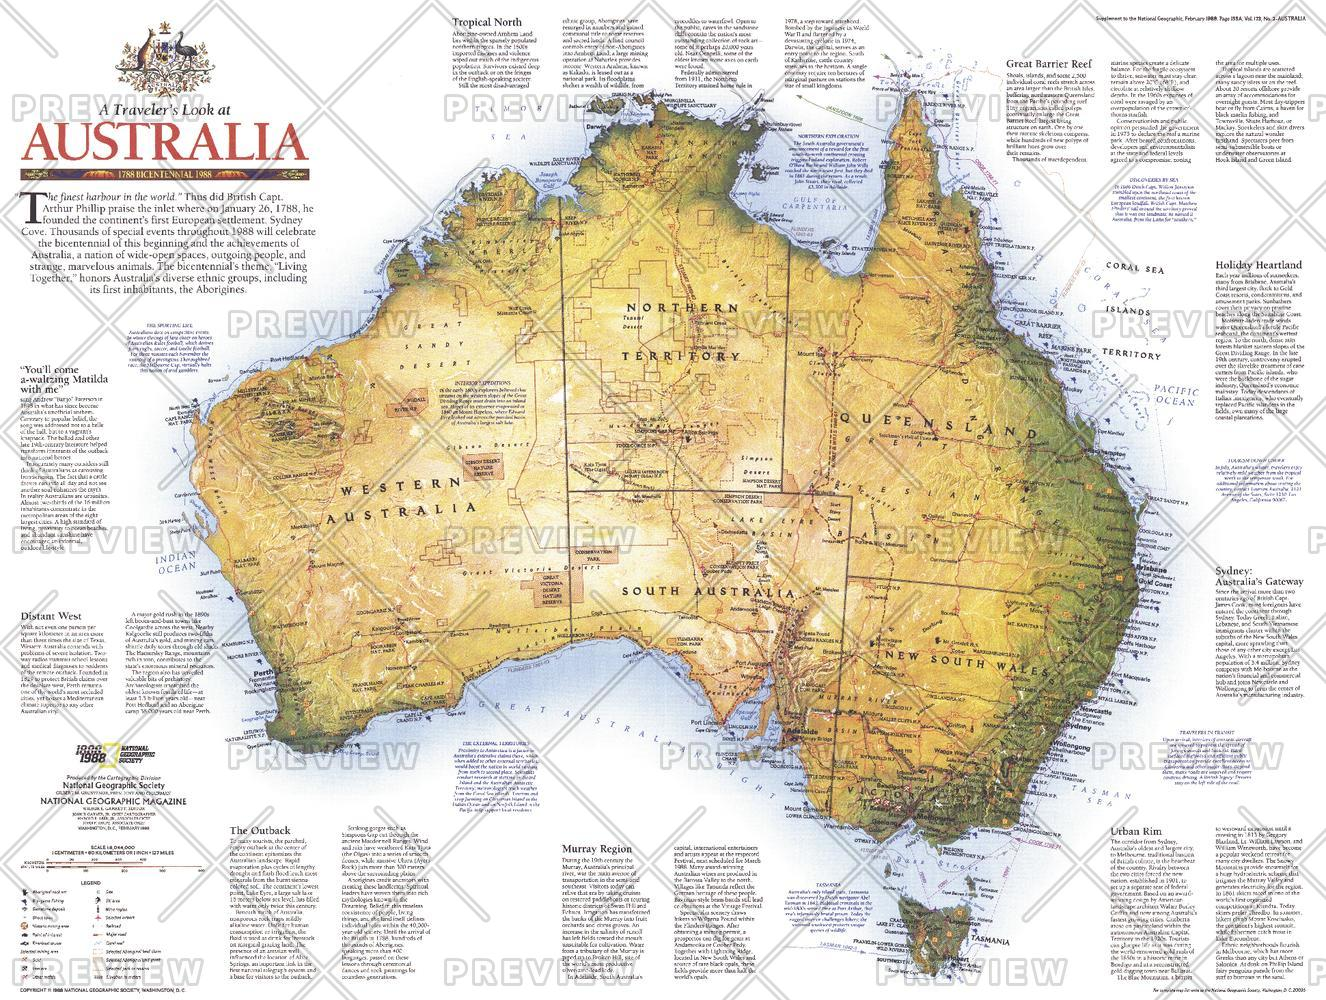 Travelers Look At Australia  -  Published 1988